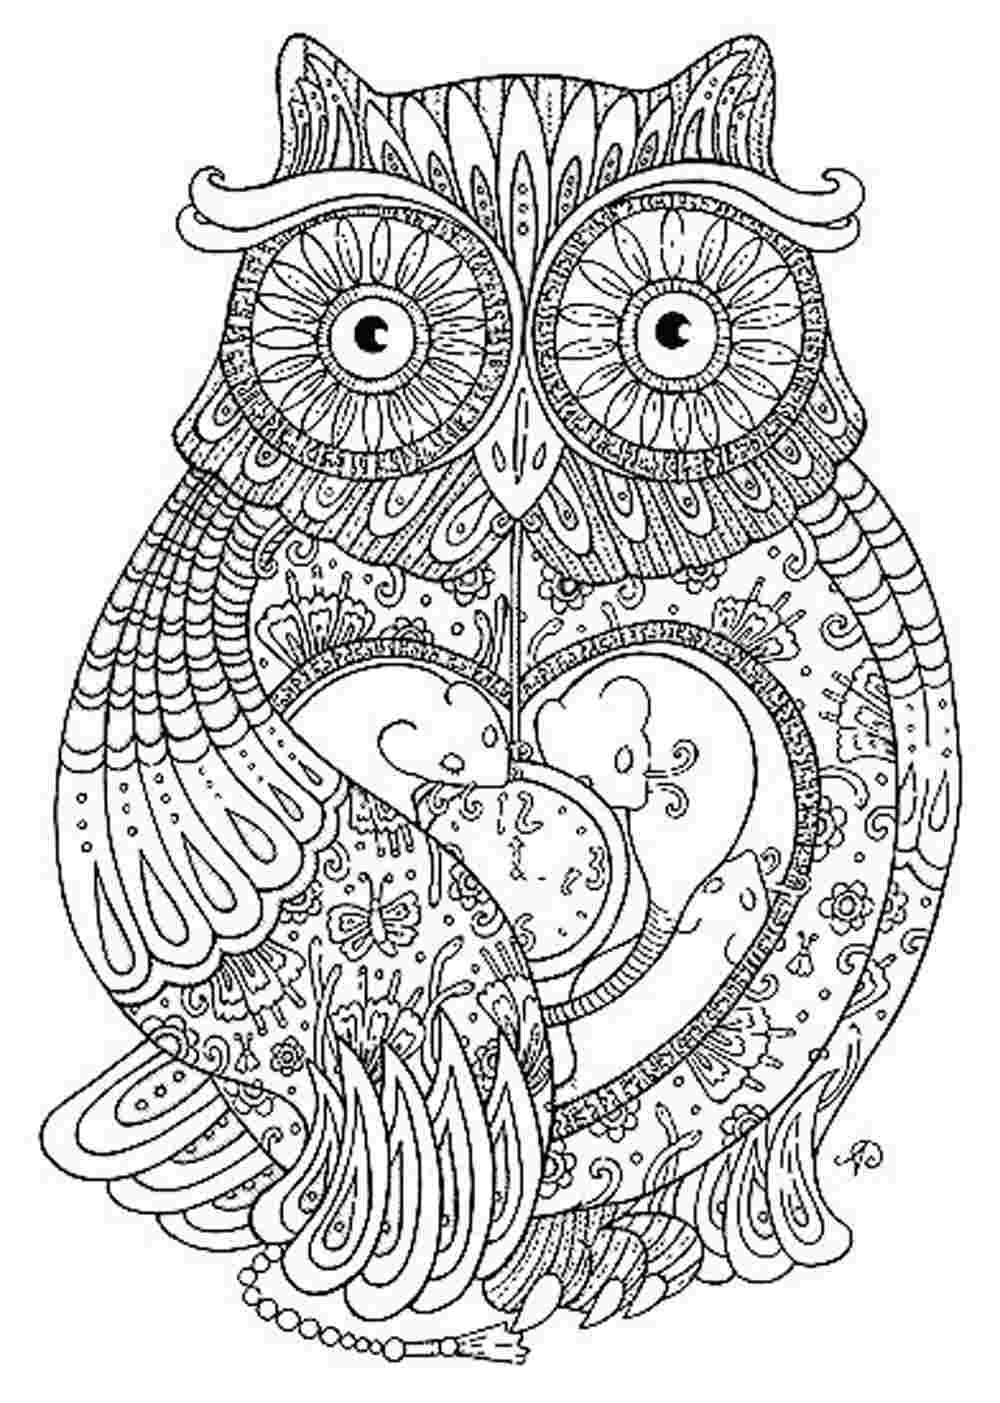 coloring sheet for adults floral coloring pages for adults best coloring pages for sheet for coloring adults